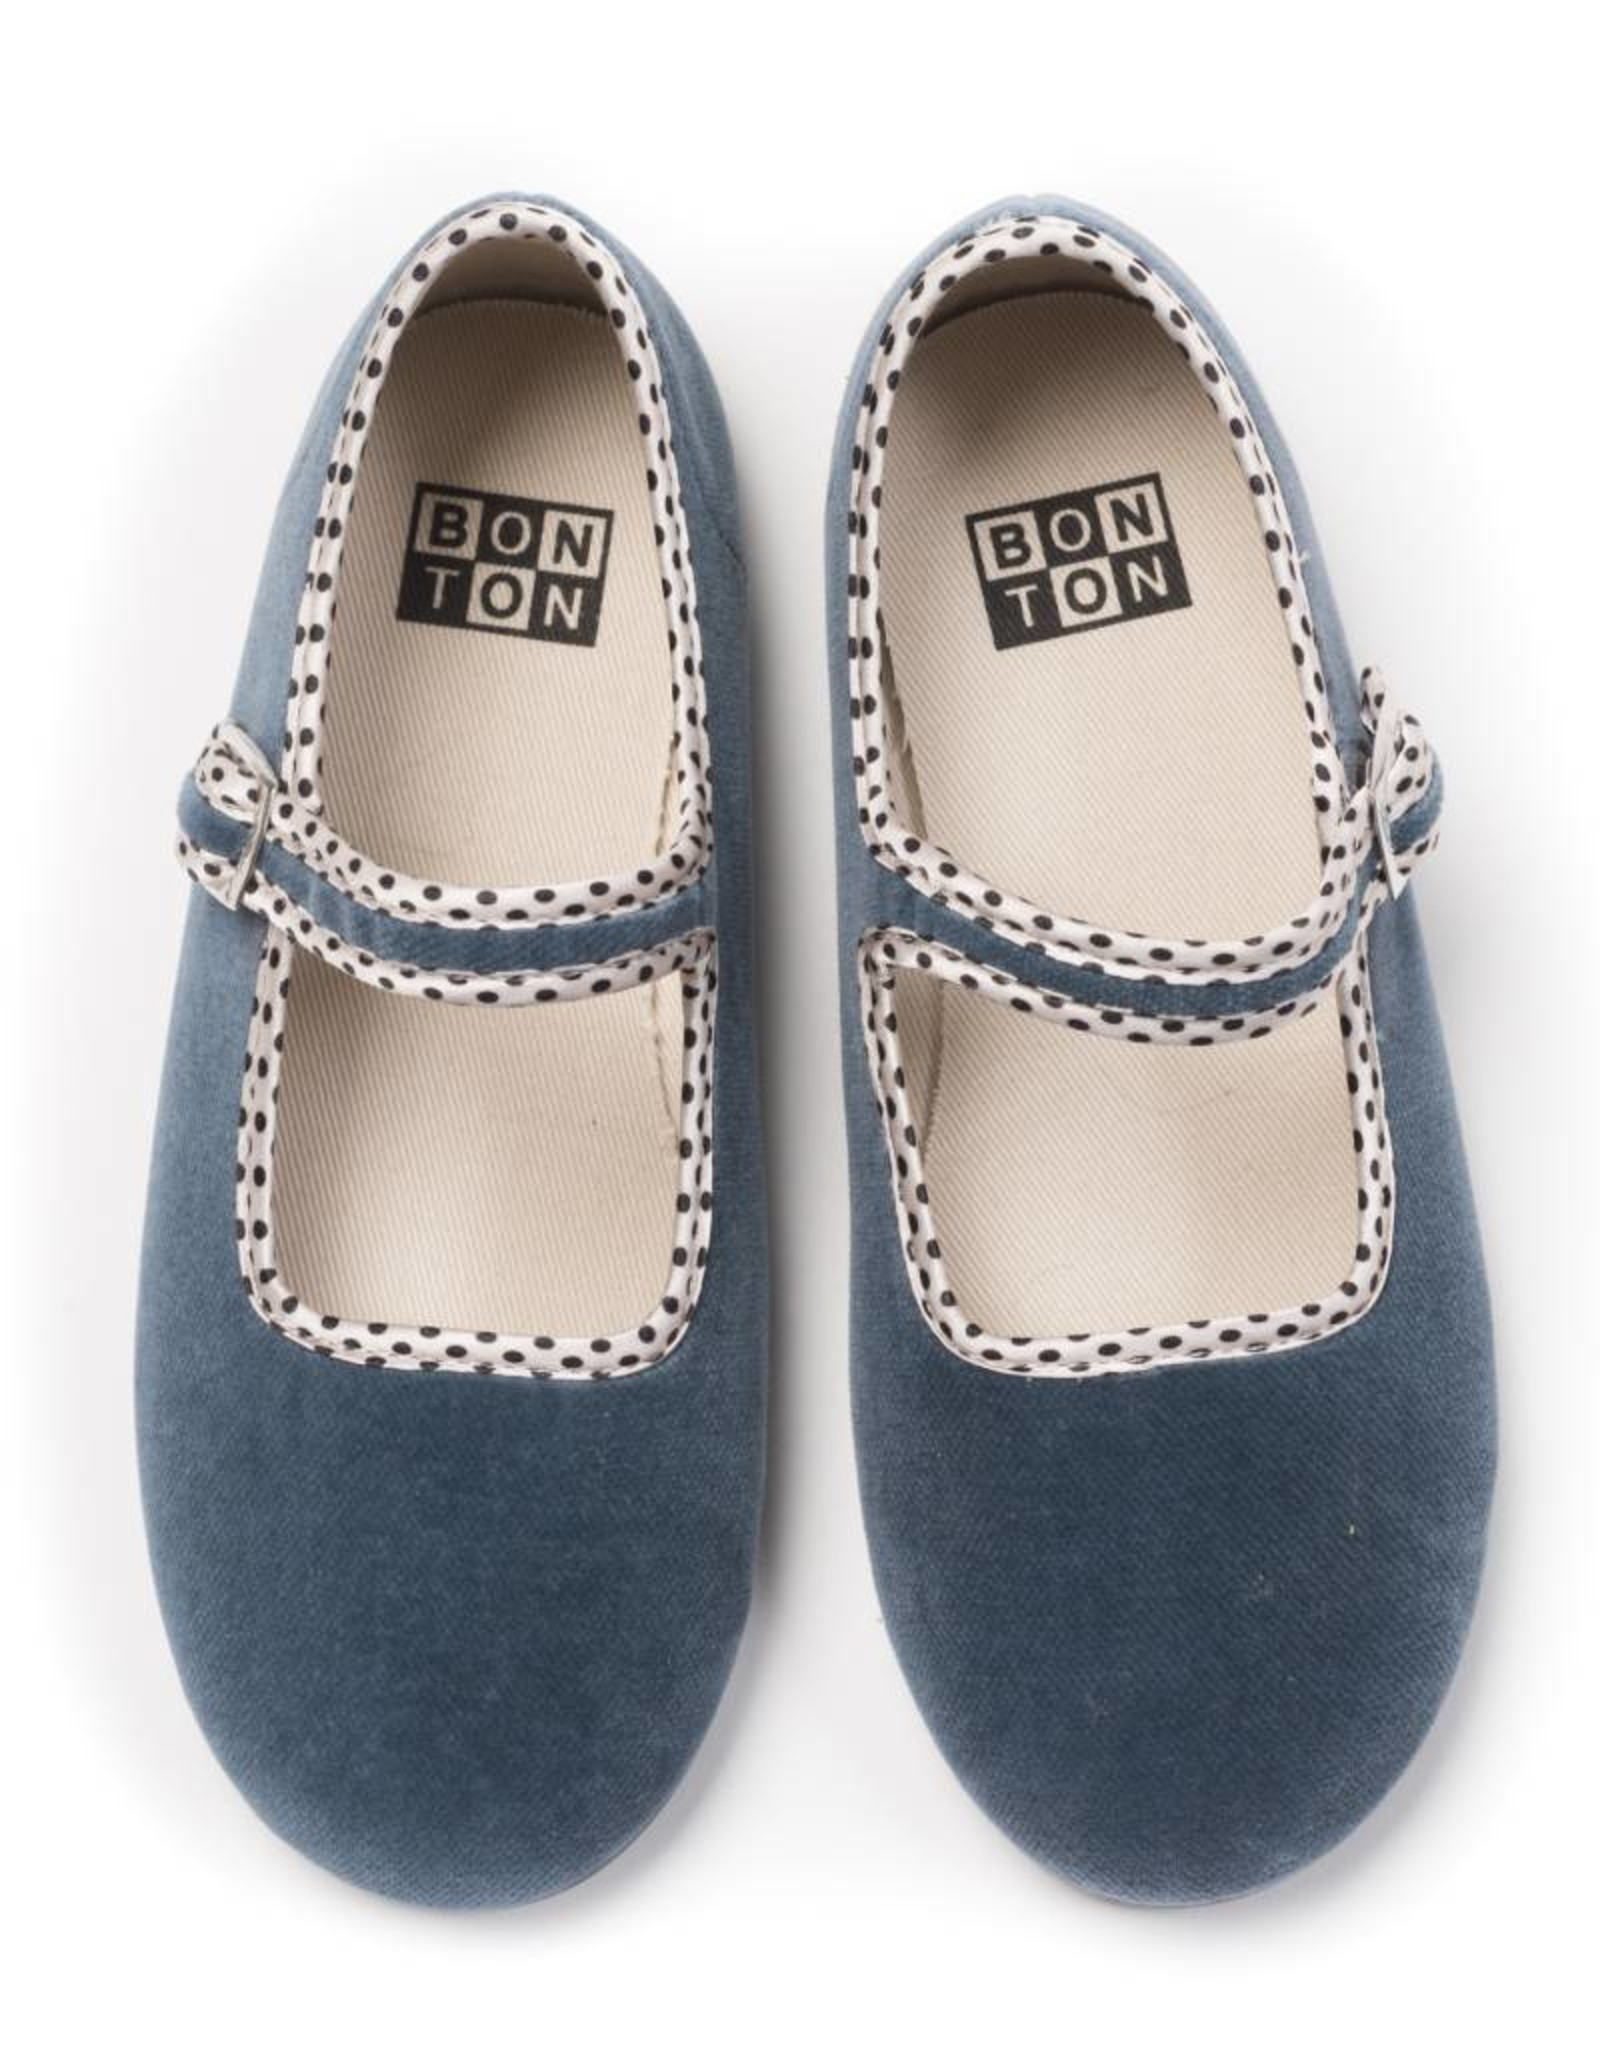 Kid's Jane sling slippers